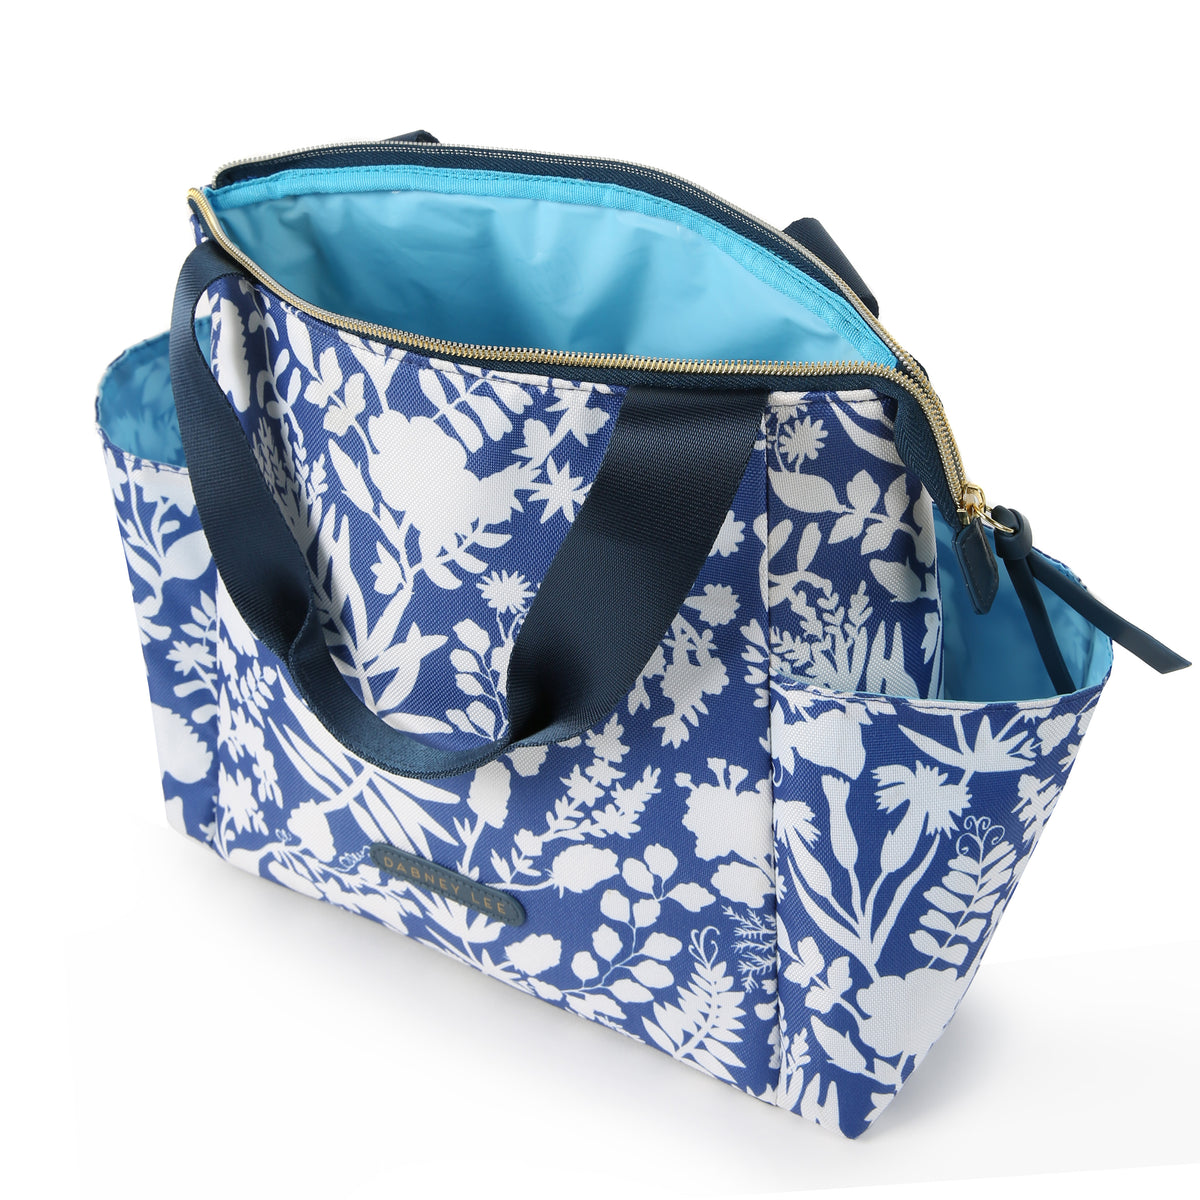 Arctic Zone® Dabney Lee Karina Tote - Summer Fling - Open, empty